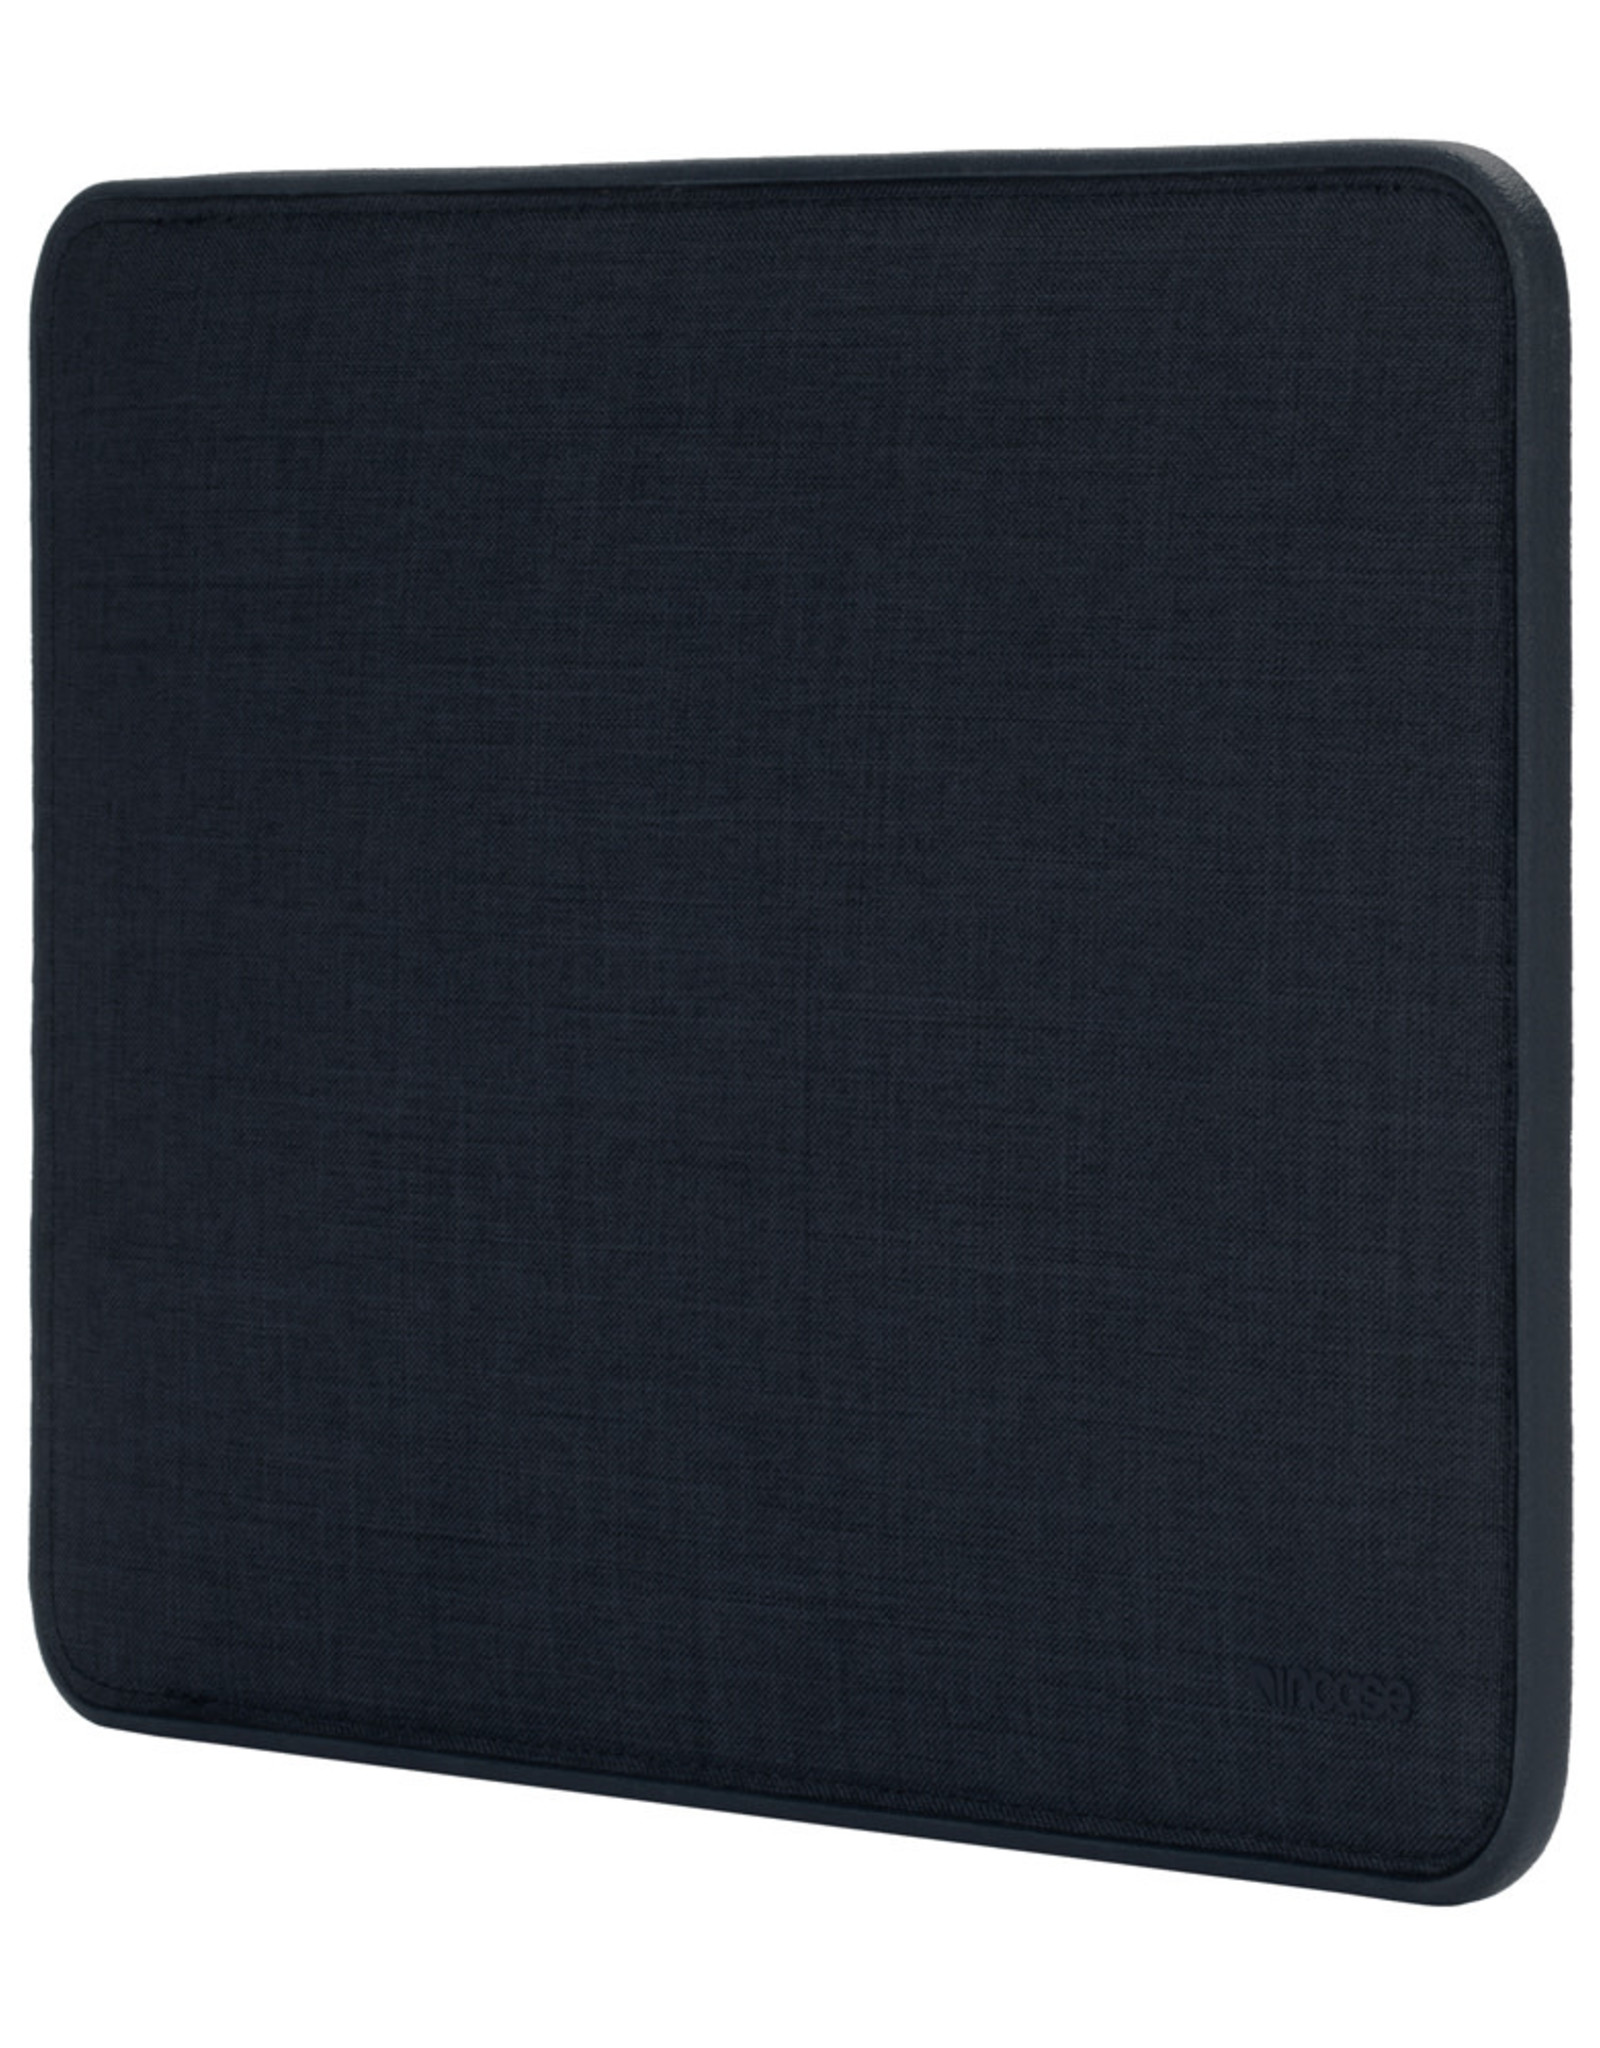 Incase | ICON Sleeve with Woolenex Heather Navy for MacBook Pro 15 inch 108-0013